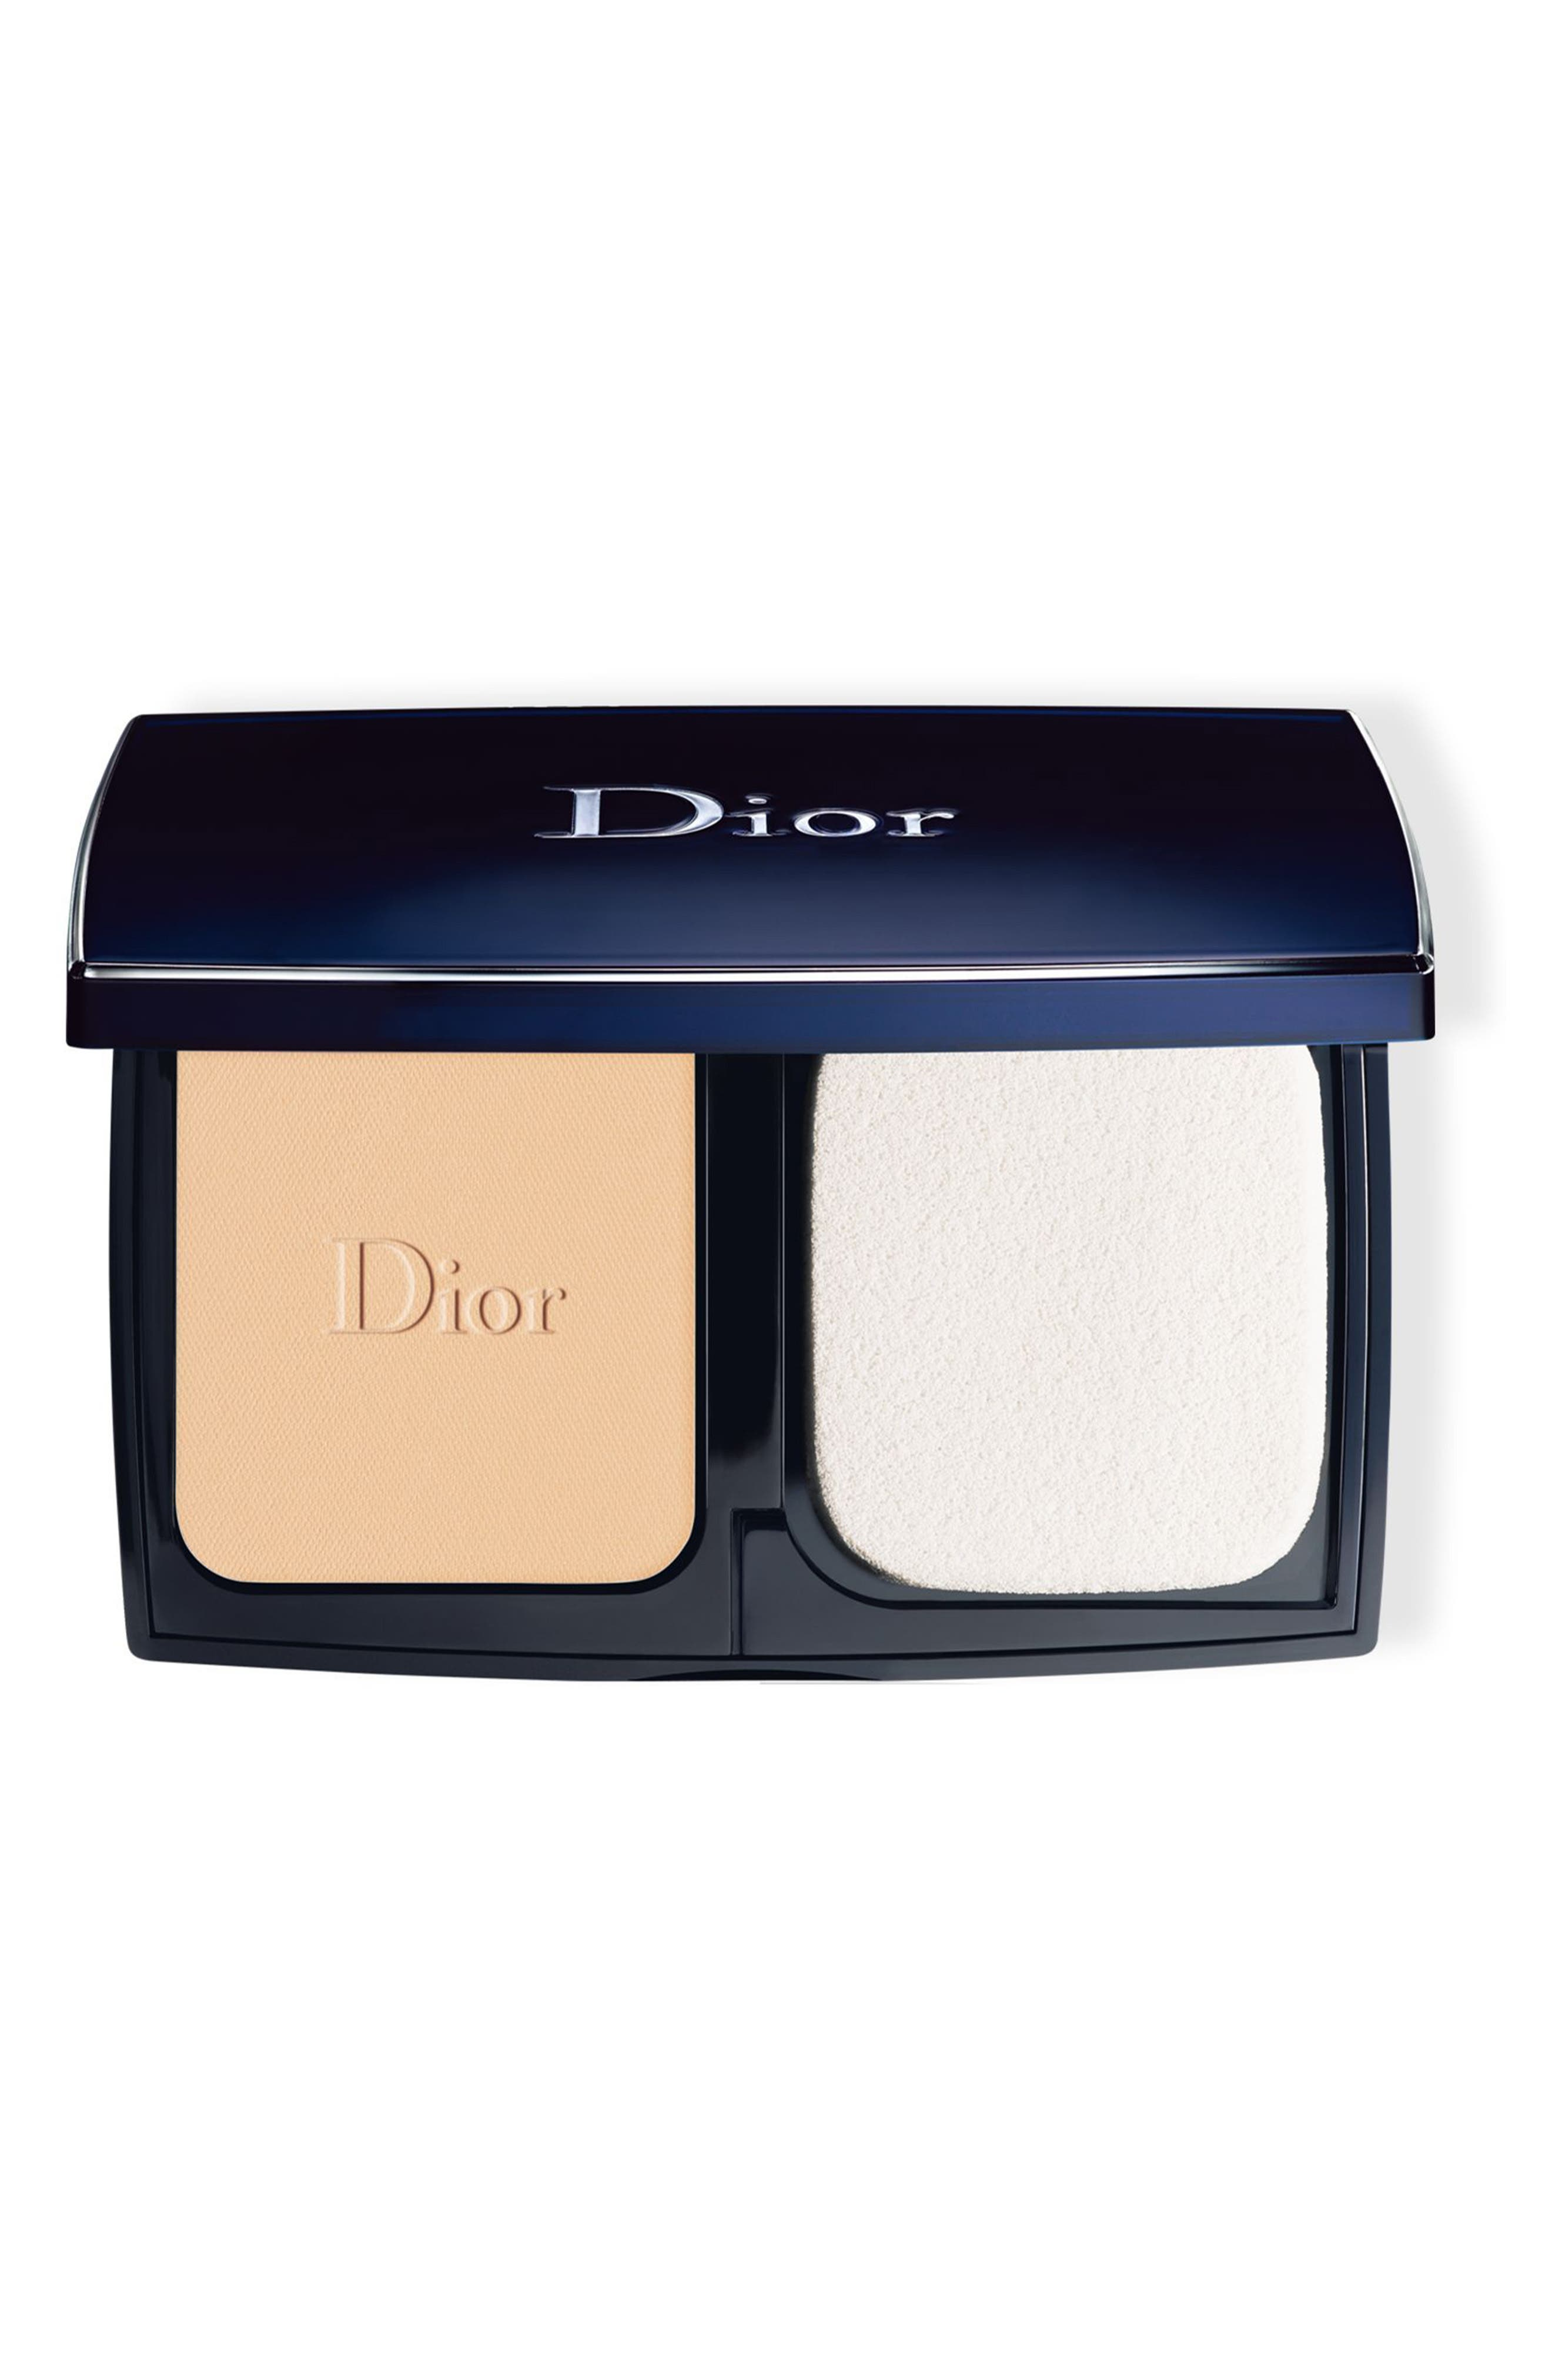 Alternate Image 1 Selected - Dior Diorskin Forever Flawless Perfection Fusion Wear Compact Foundation SPF 25